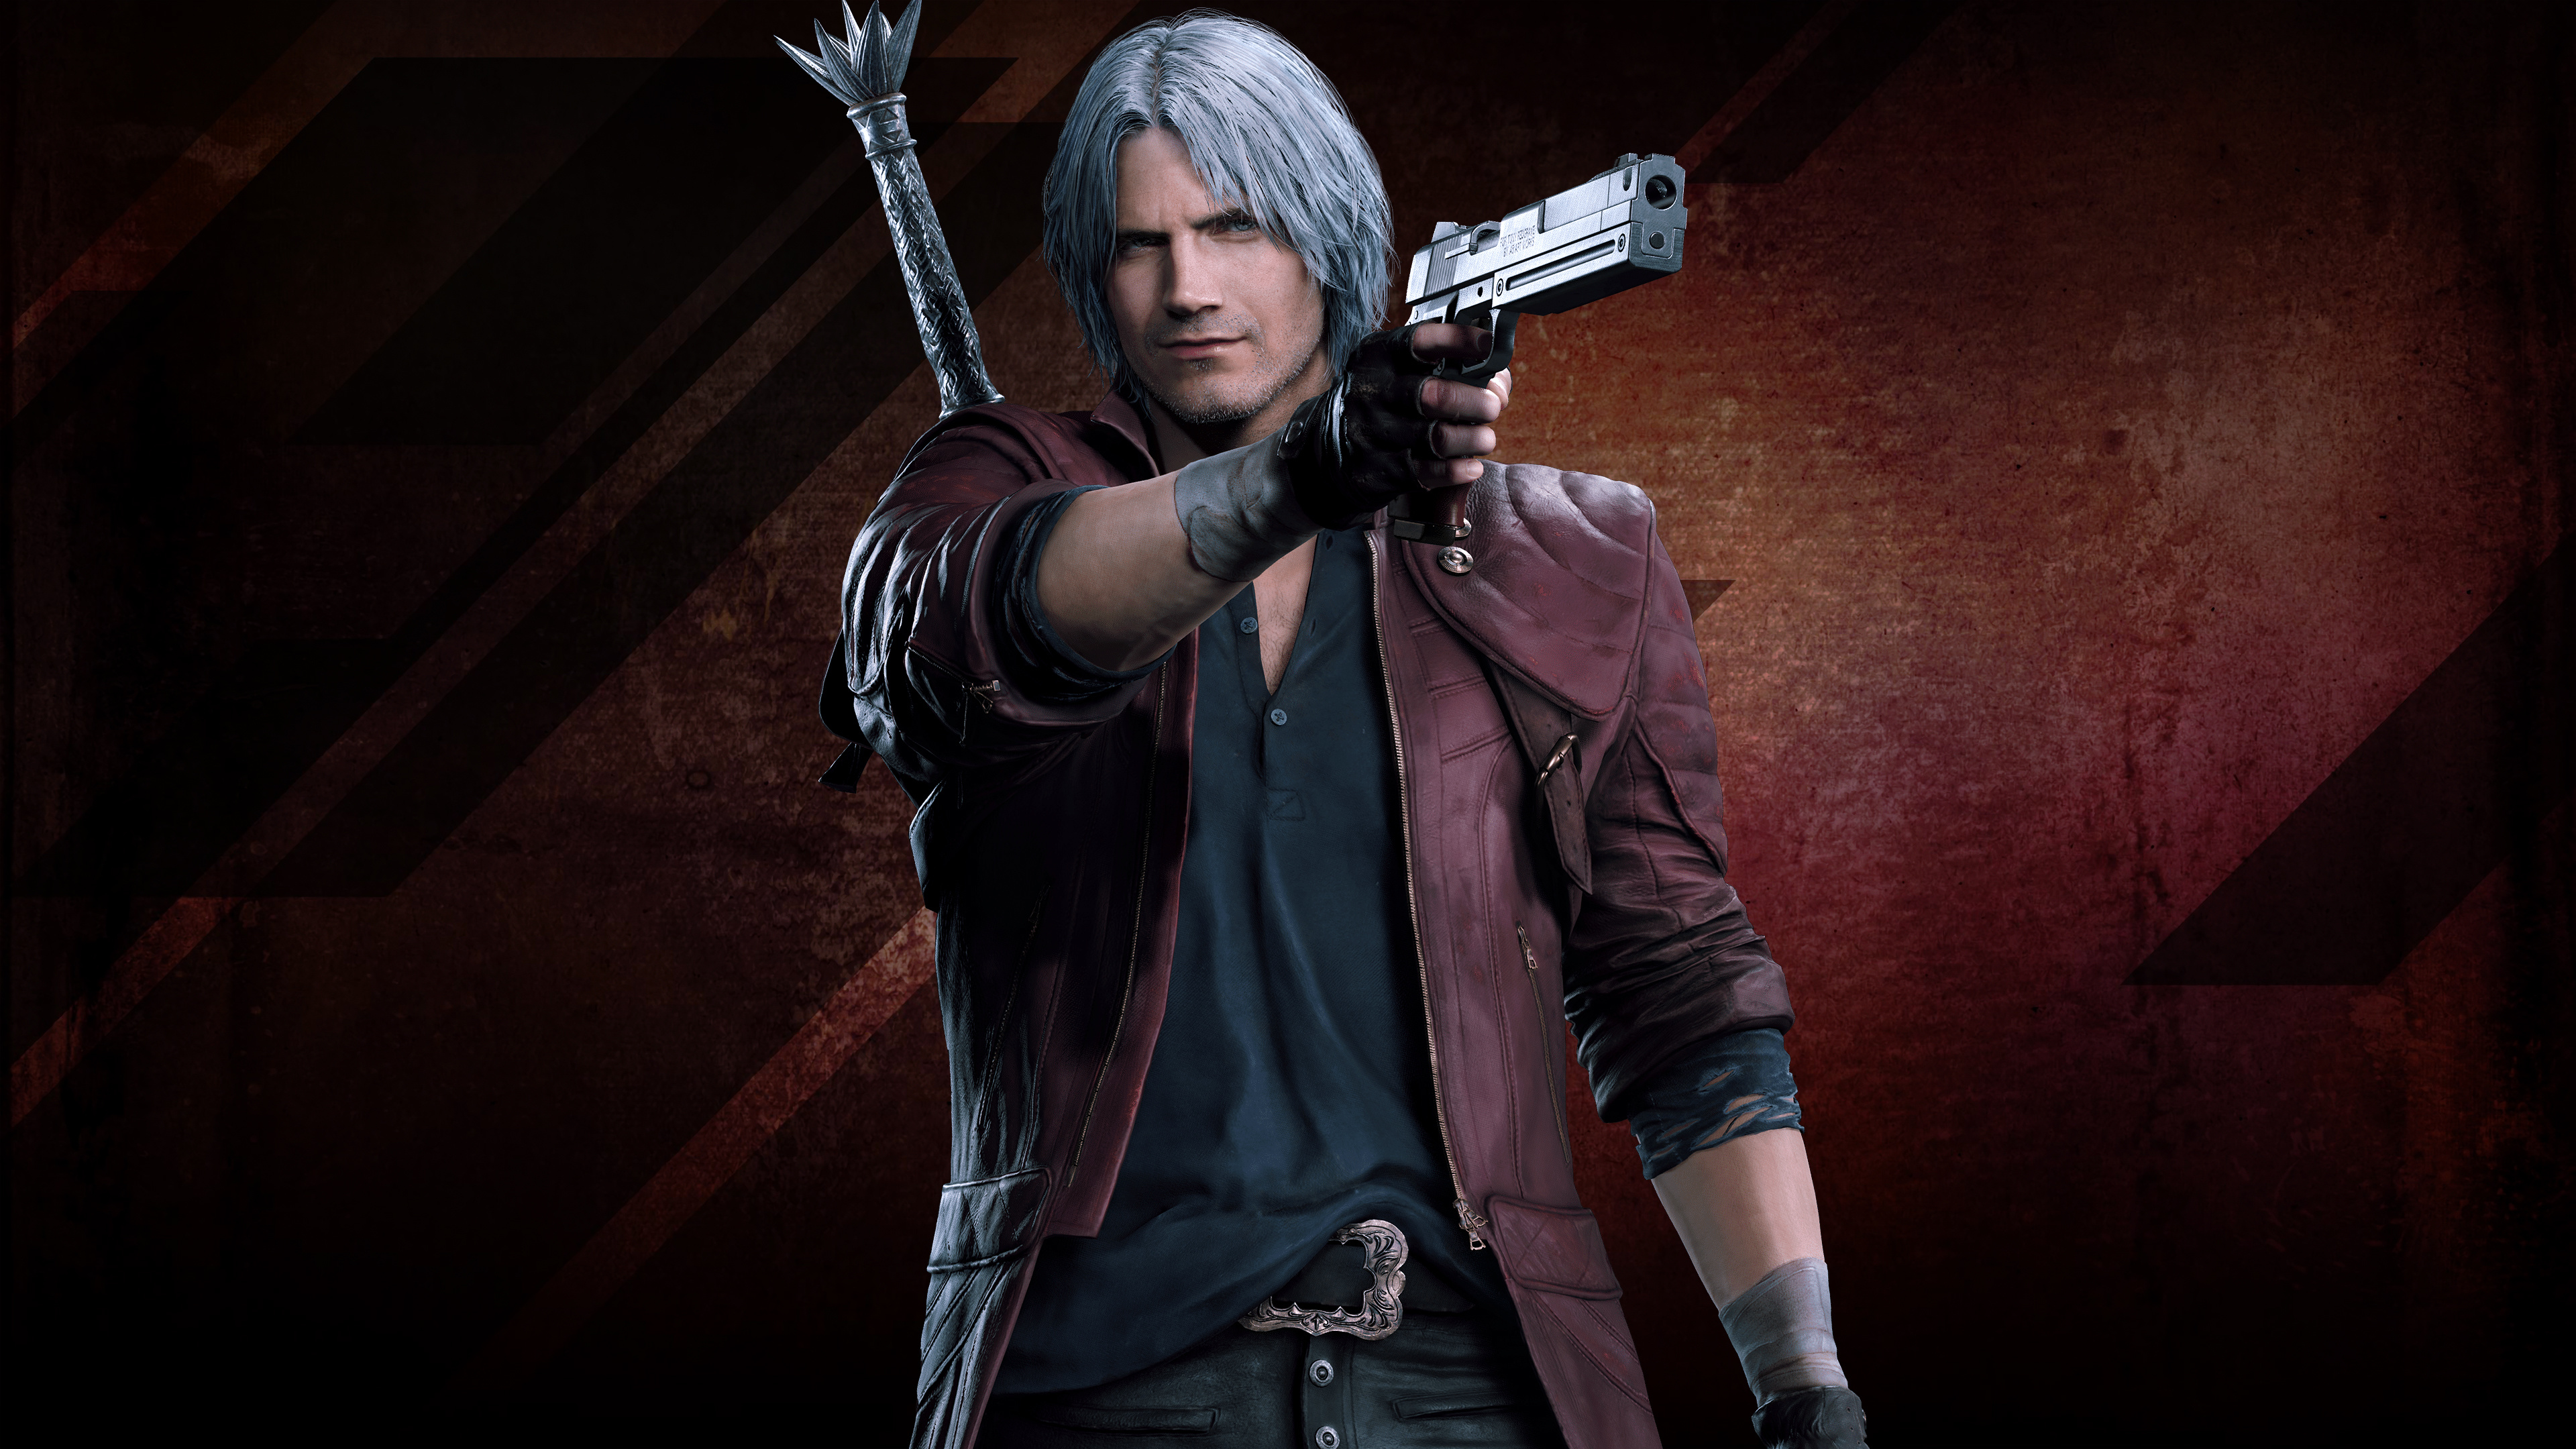 Devil May Cry 5 Wallpaper: Dante Devil May Cry 4k, HD Games, 4k Wallpapers, Images